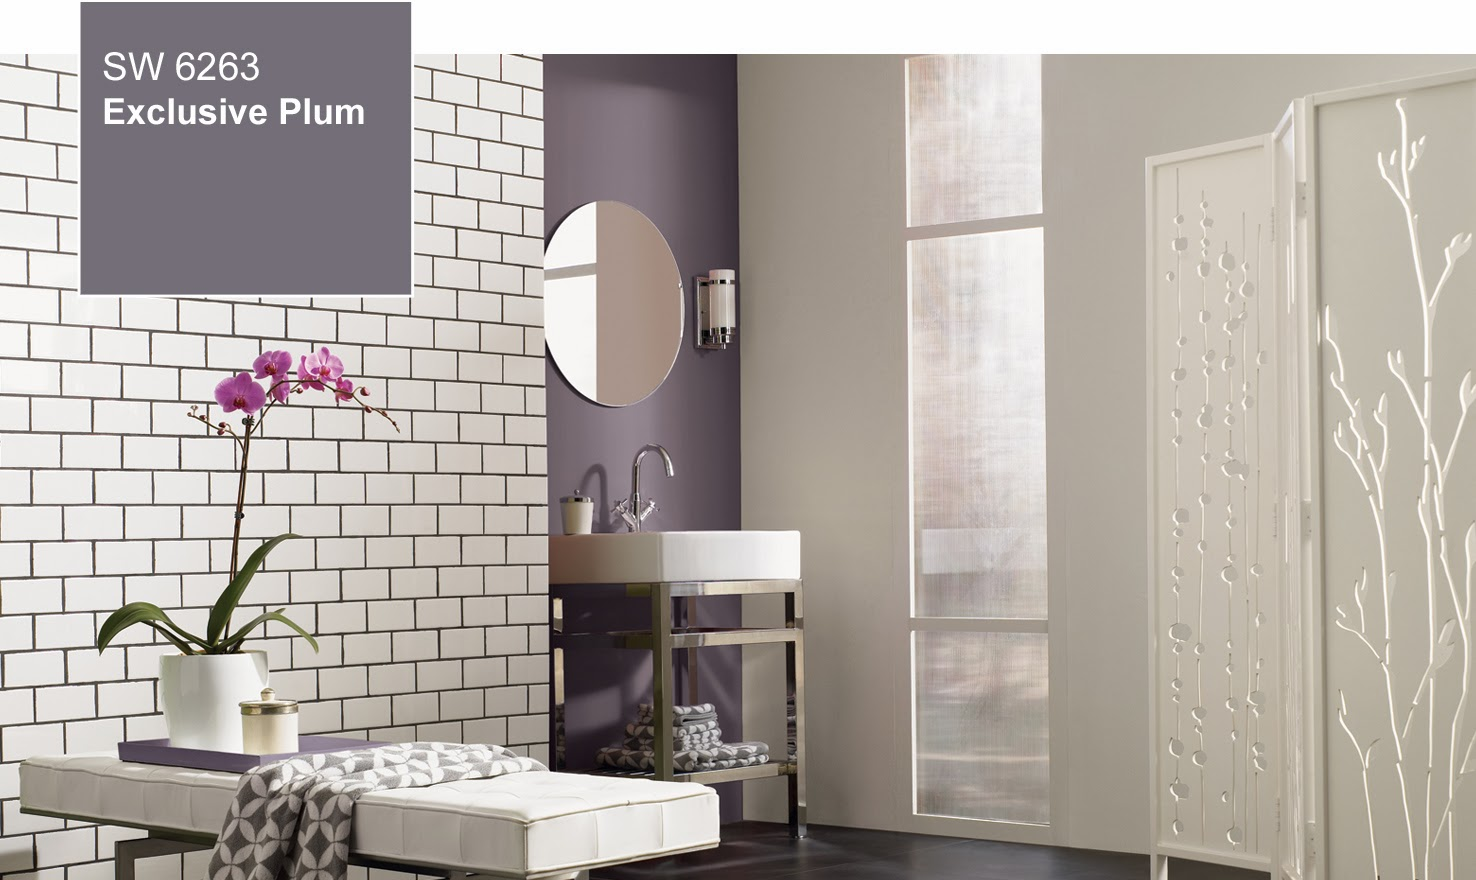 It seems from what i see in these promotional photos from sherwin williams that the color has enough grey in it to function as a neutral